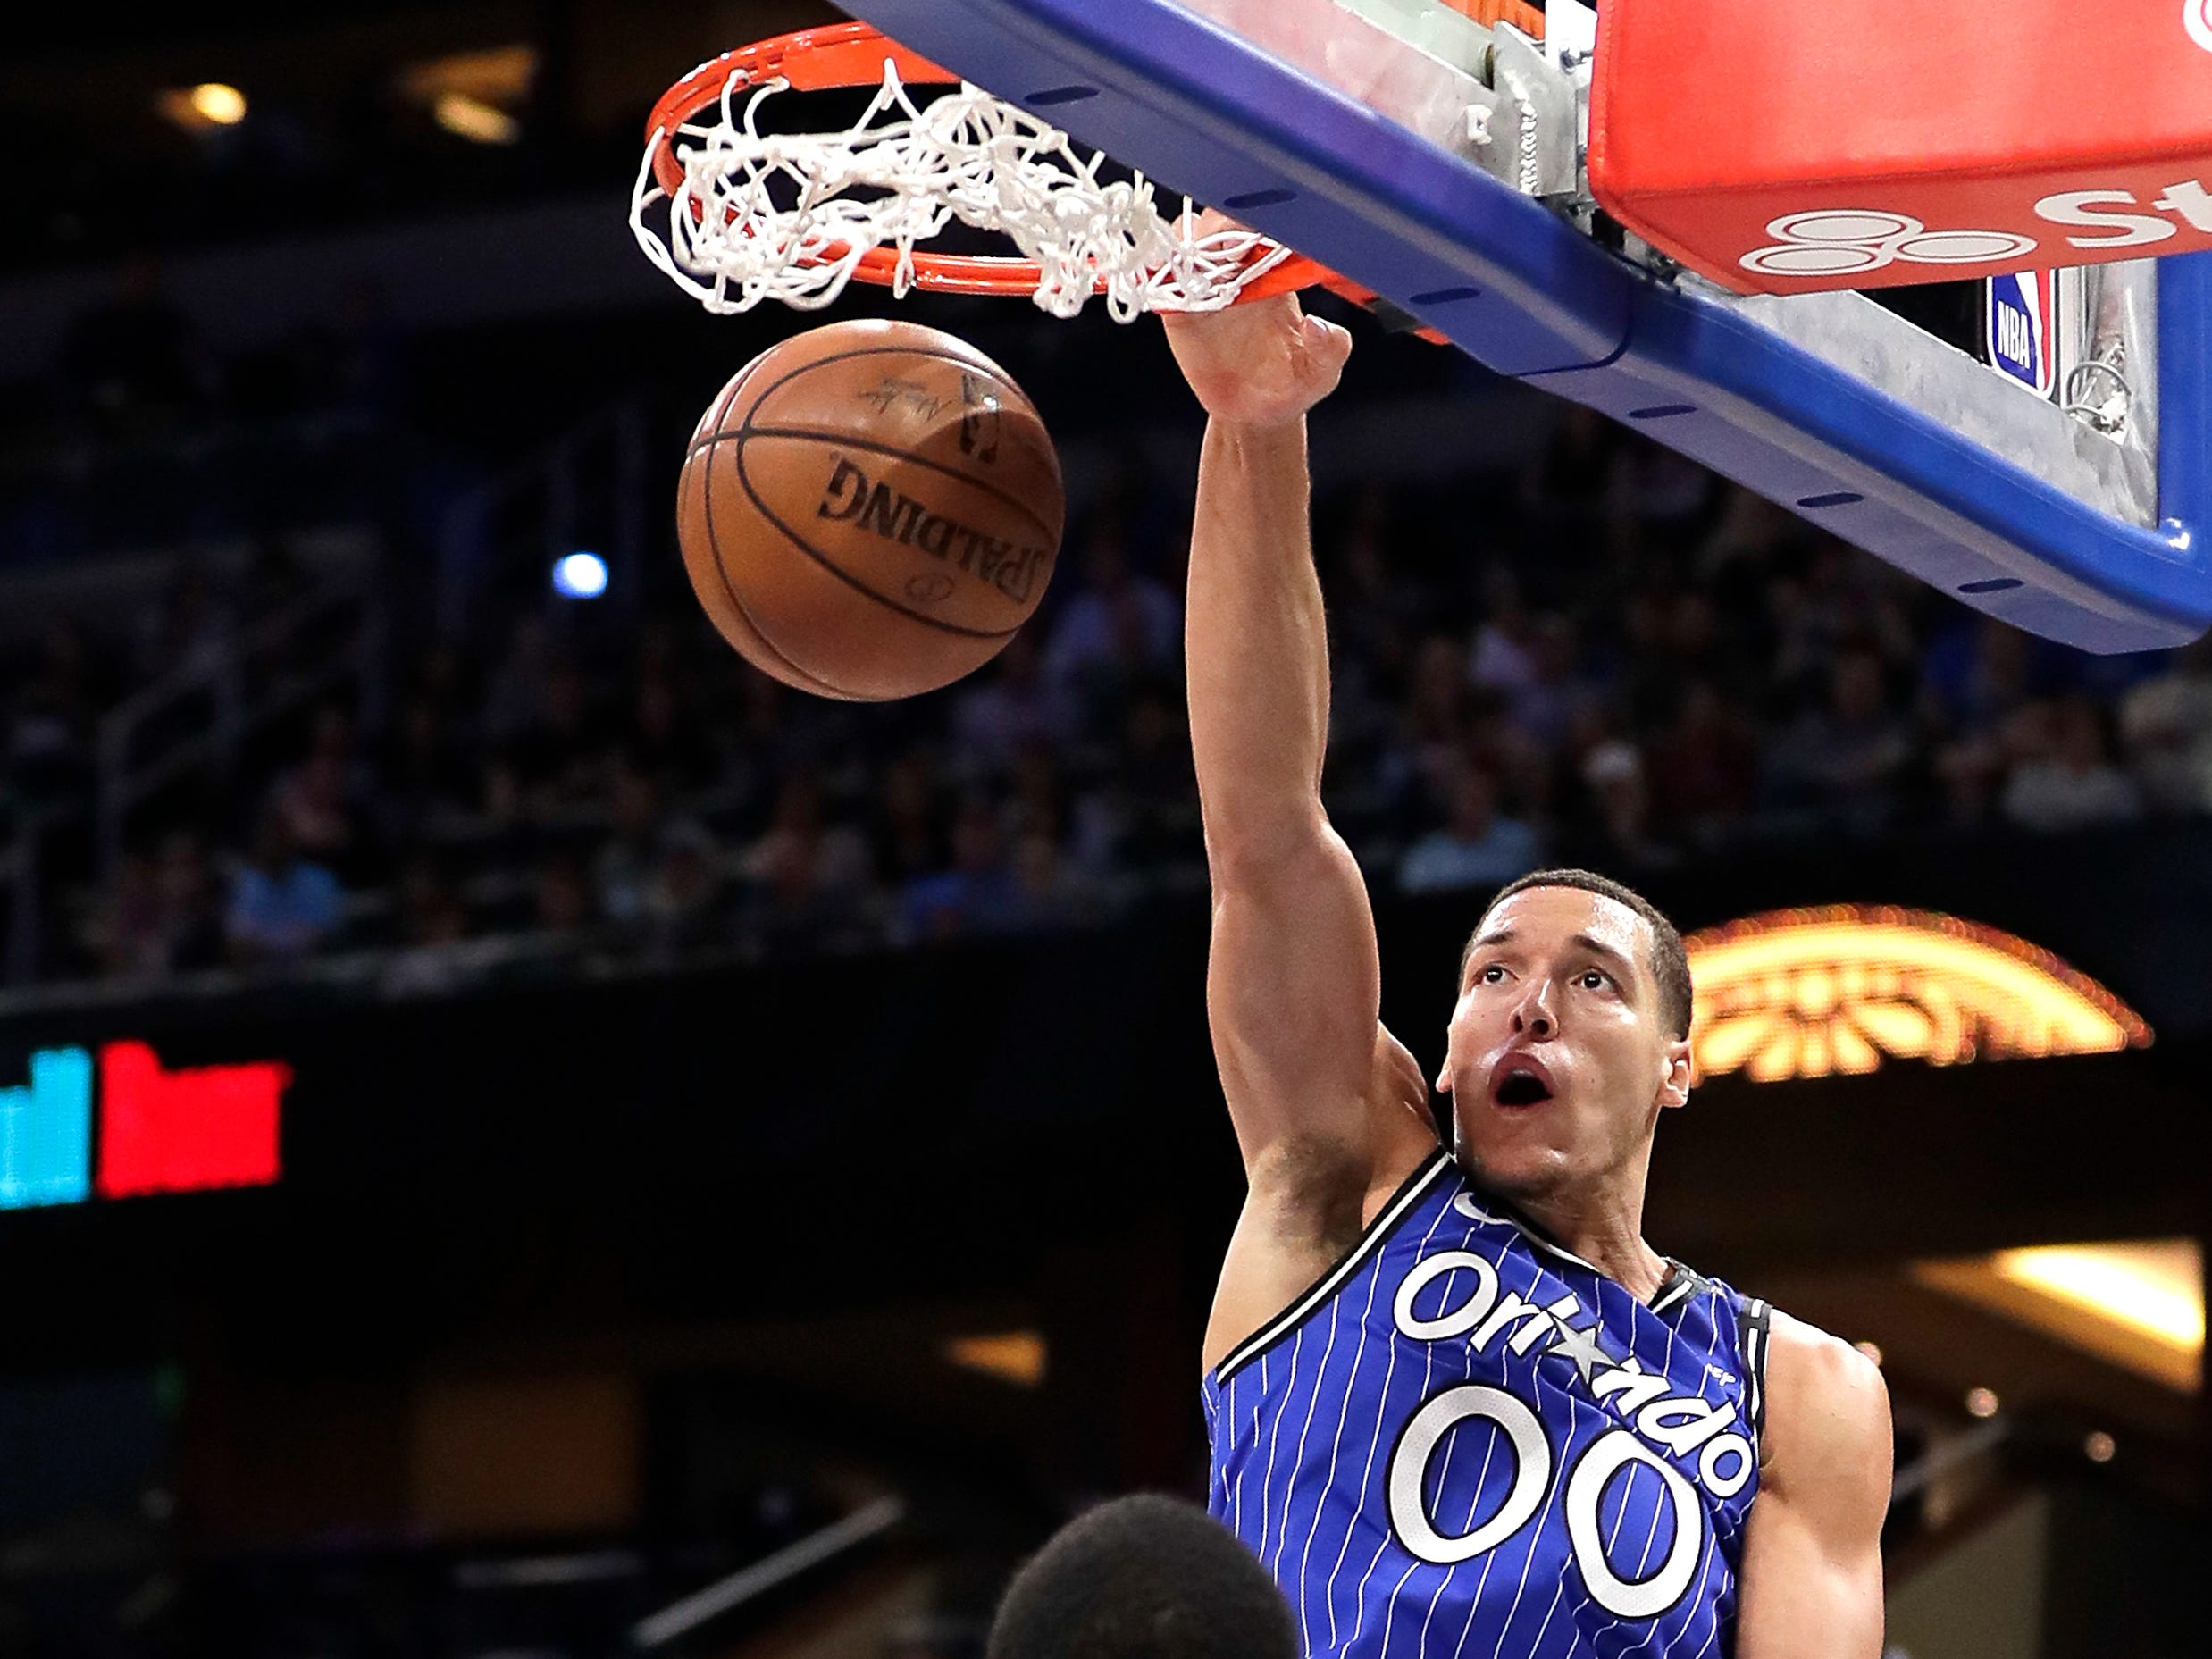 Orlando Magic's Aaron Gordon (00) dunks the ball in front of Detroit Pistons' Andre Drummond (0) during the first half of an NBA basketball game.